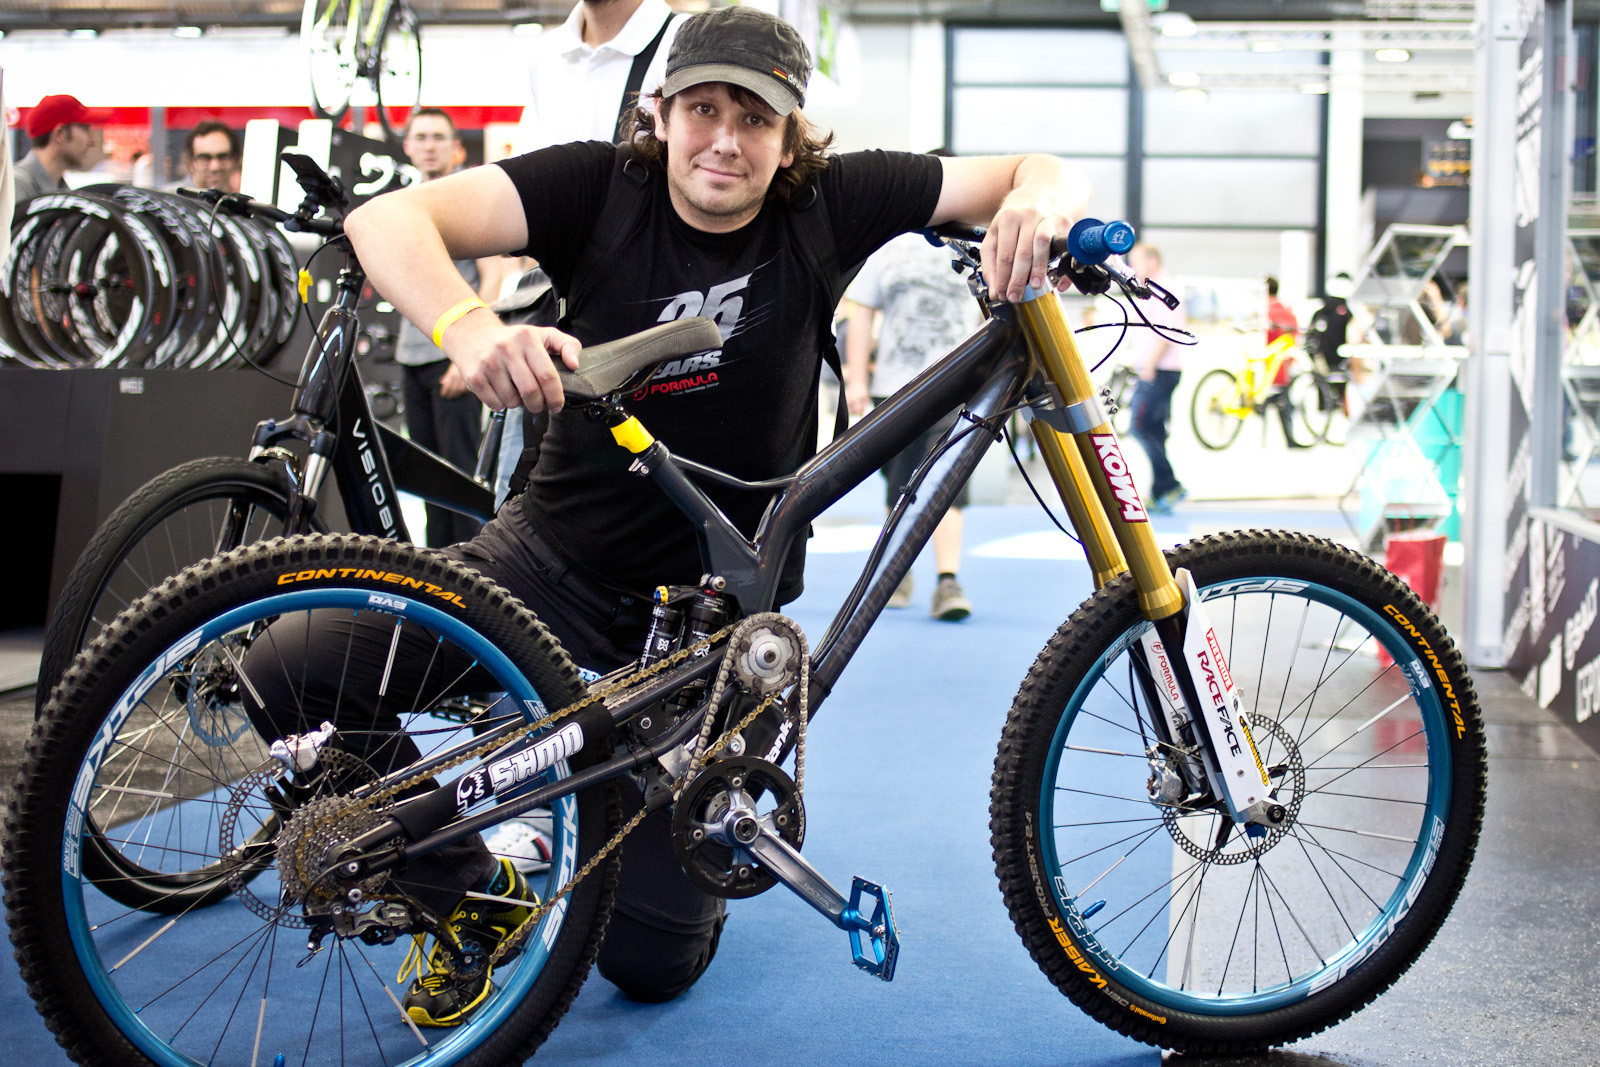 Norland Cycles Stealth Rider Prototype DH Bike - 2014 Downhill Bikes at Eurobike 2013 - Mountain Biking Pictures - Vital MTB